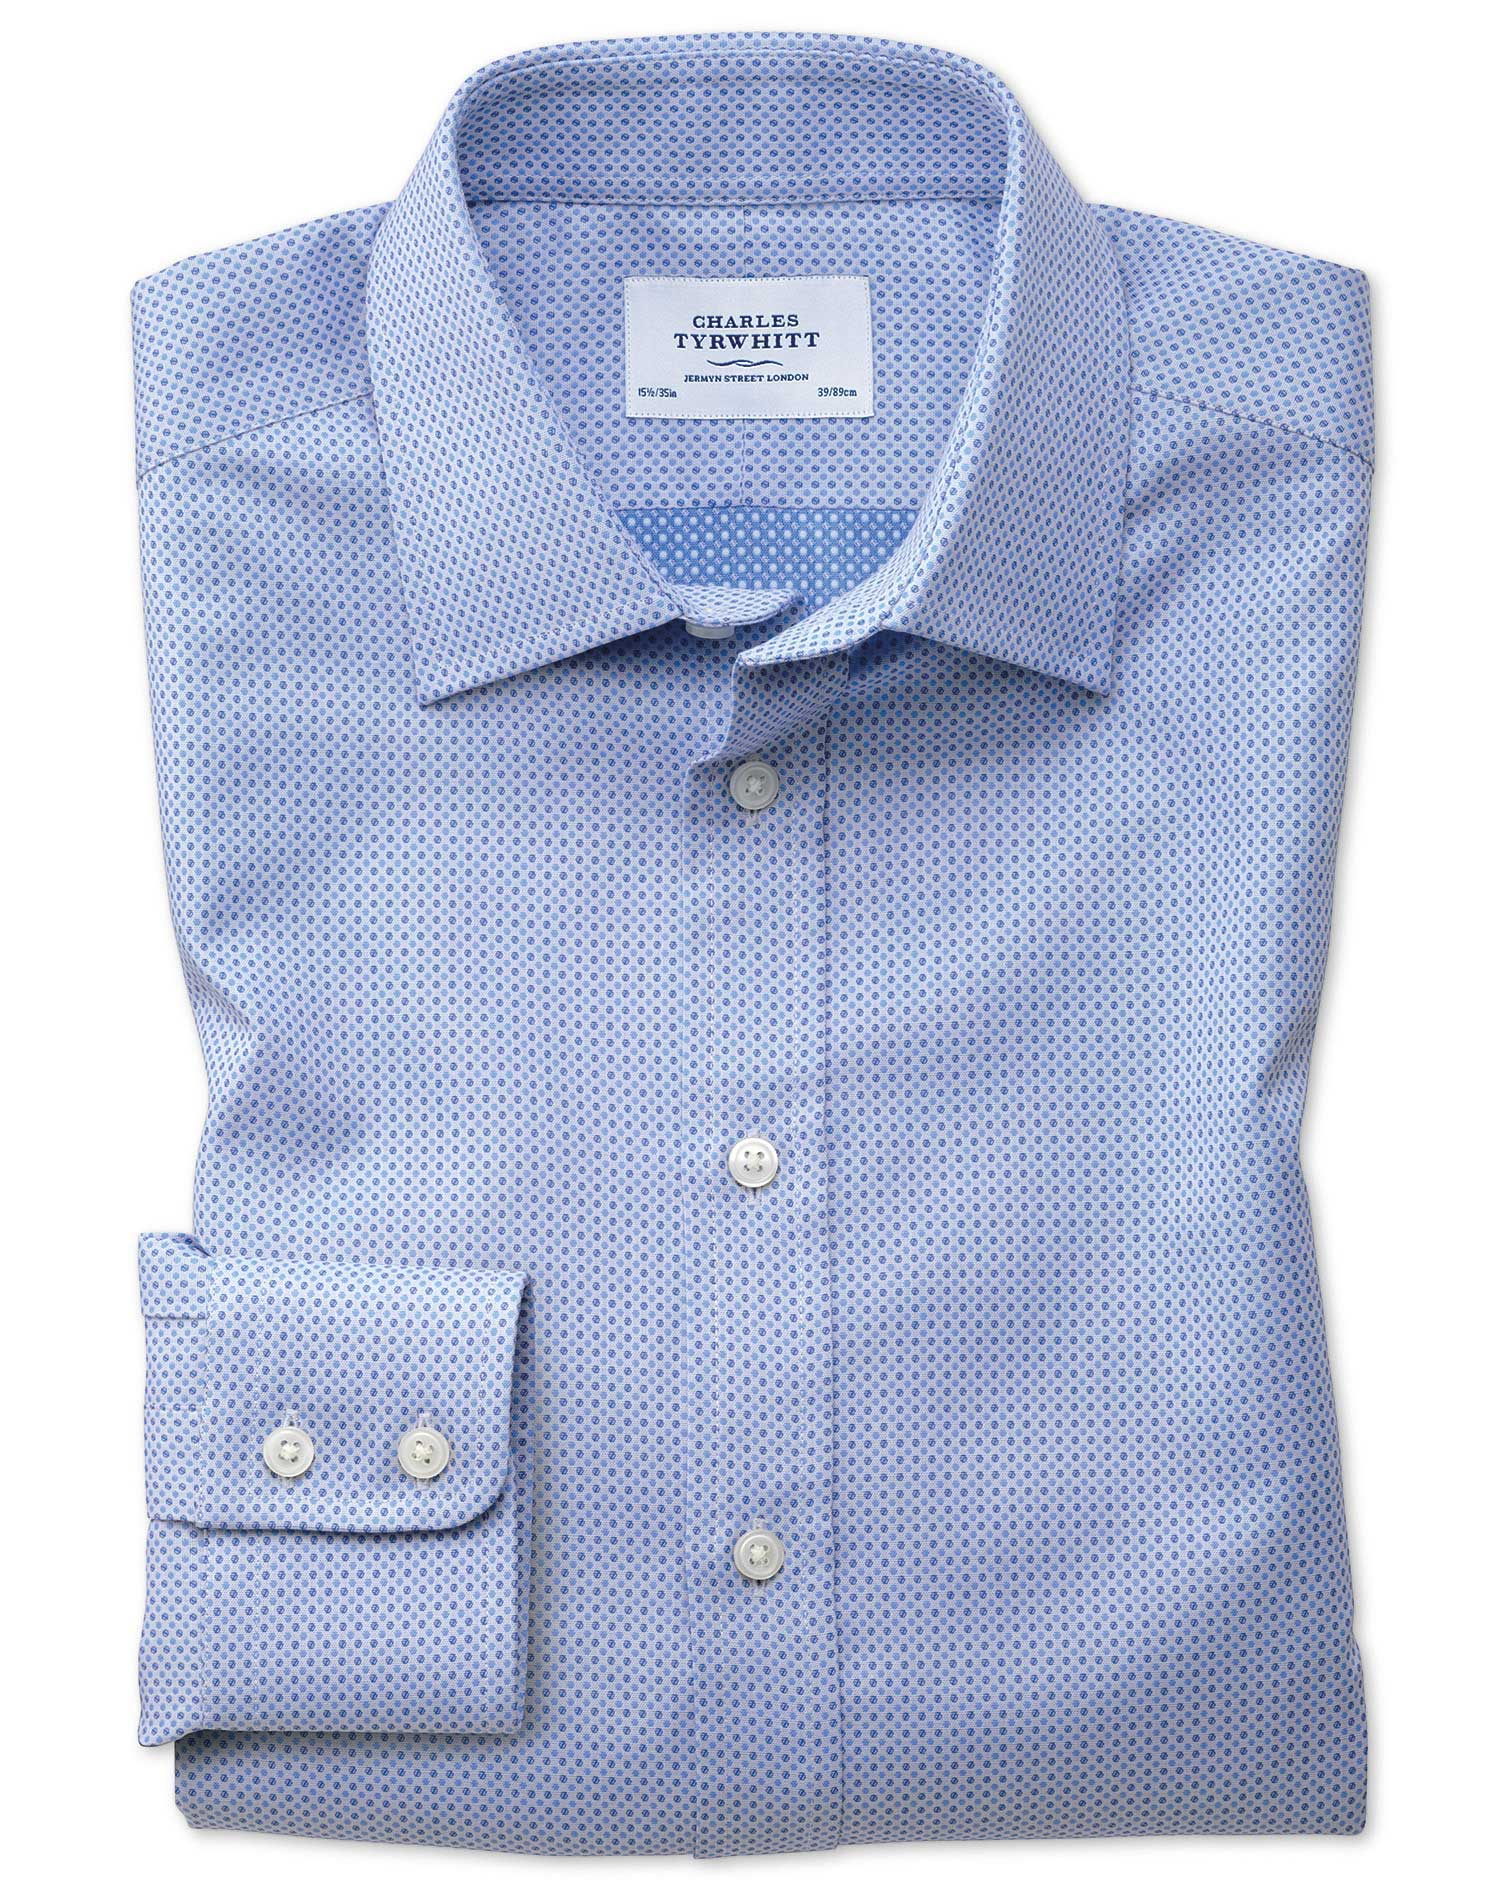 Classic Fit Egyptian Cotton Spot Weave Sky Blue Multi Formal Shirt Single Cuff Size 16.5/33 by Charl